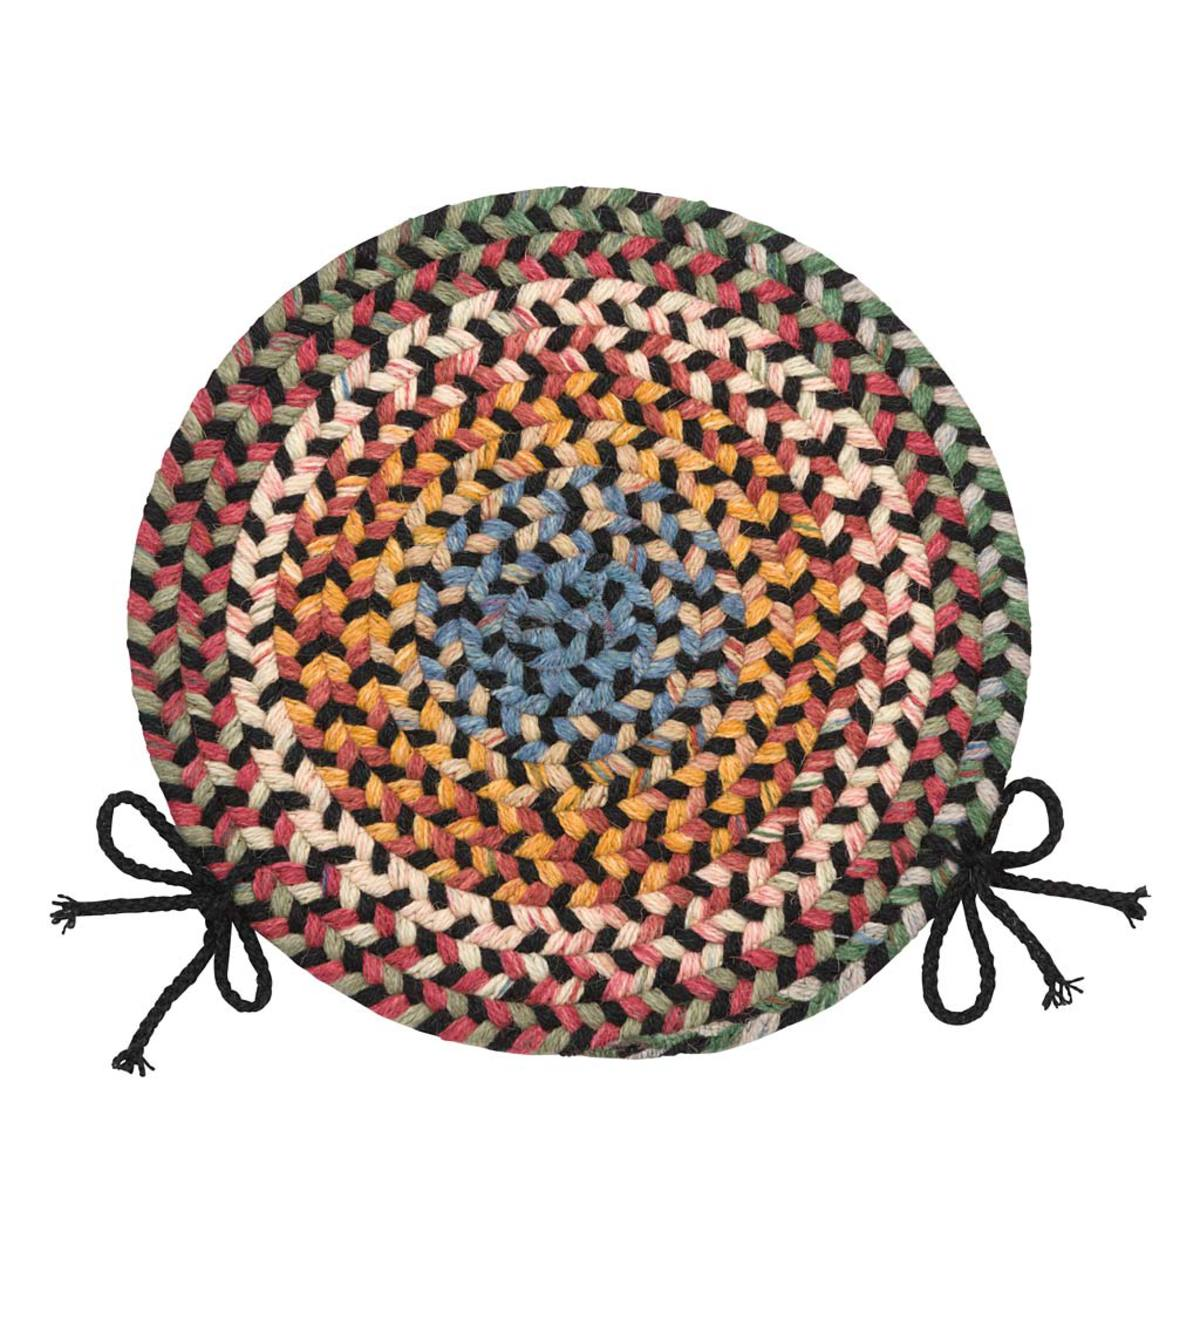 "Blue Ridge Wool Braided Chair Pad, 15"" Round - Black Multi"